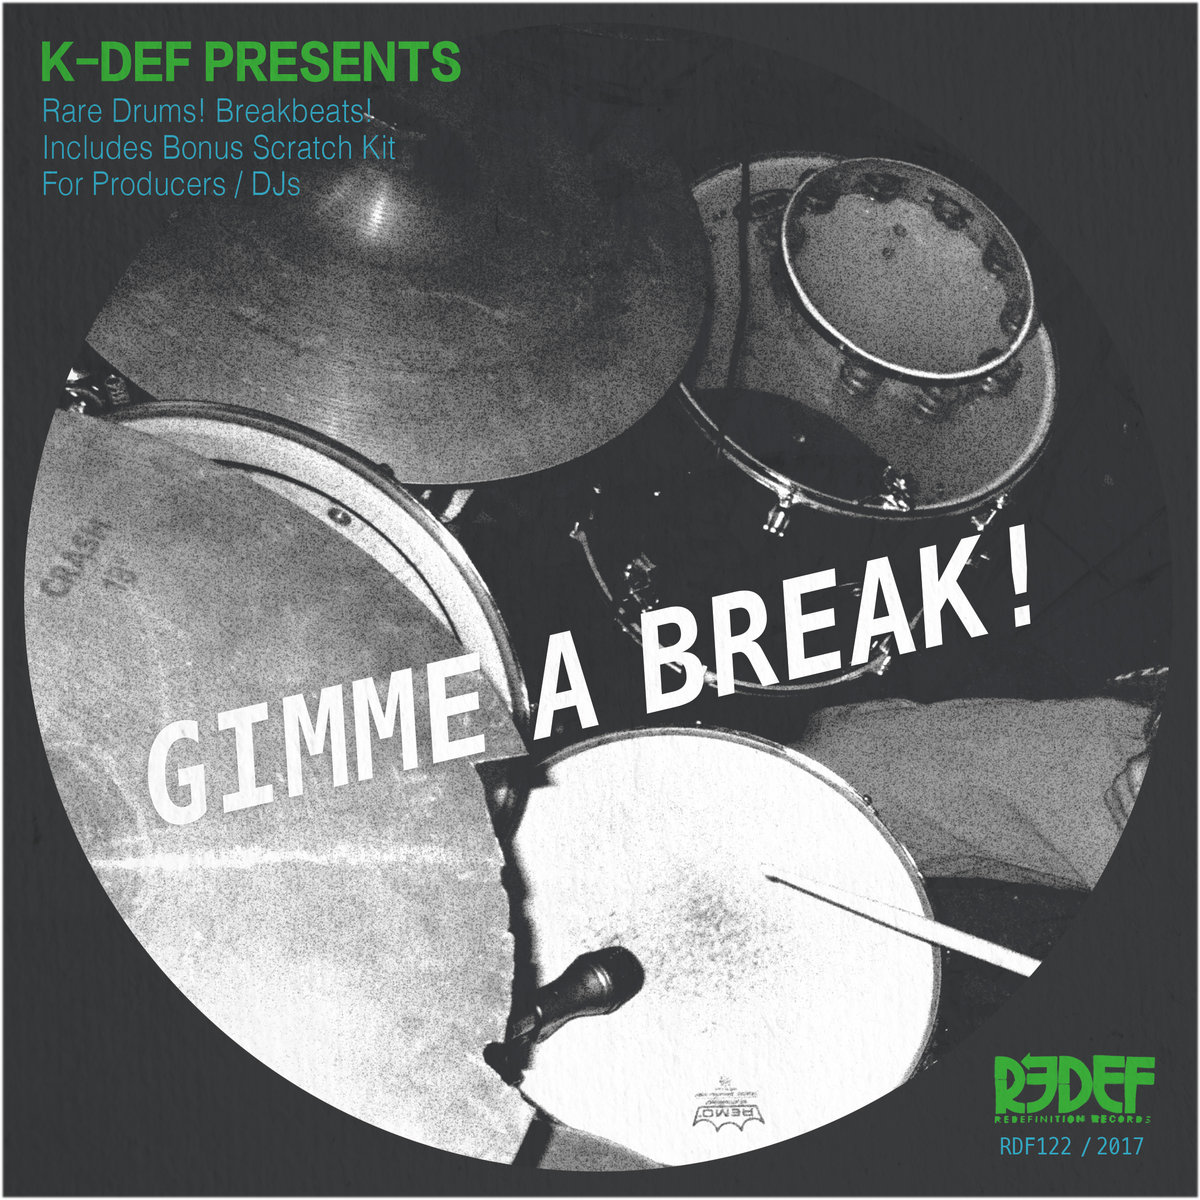 Gimme a Break! (Drum Samples on 45) | Redefinition Records